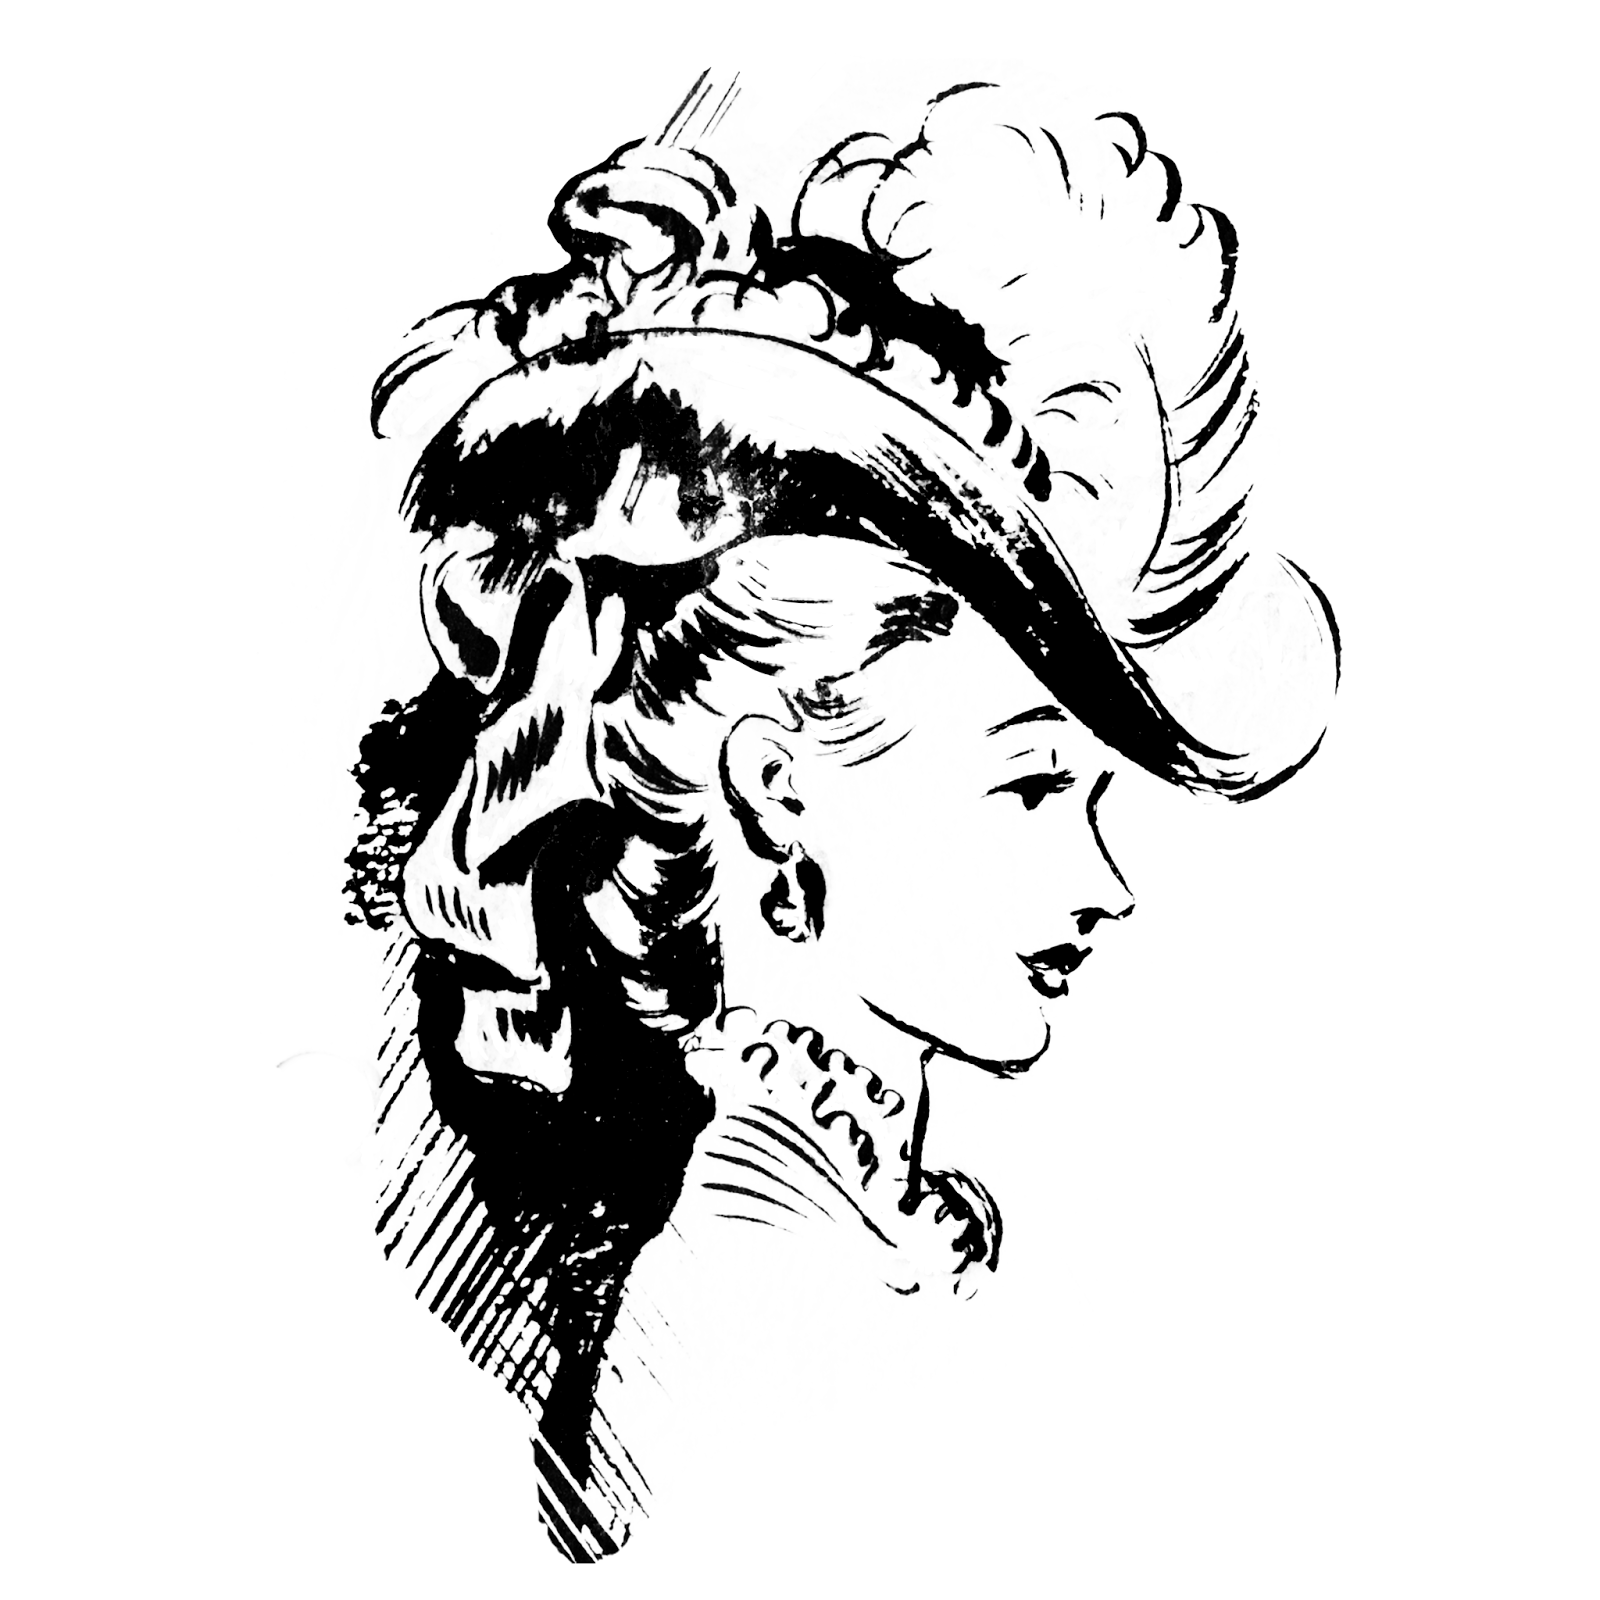 Line Drawing Lady : Vintage line drawings of people imgkid the